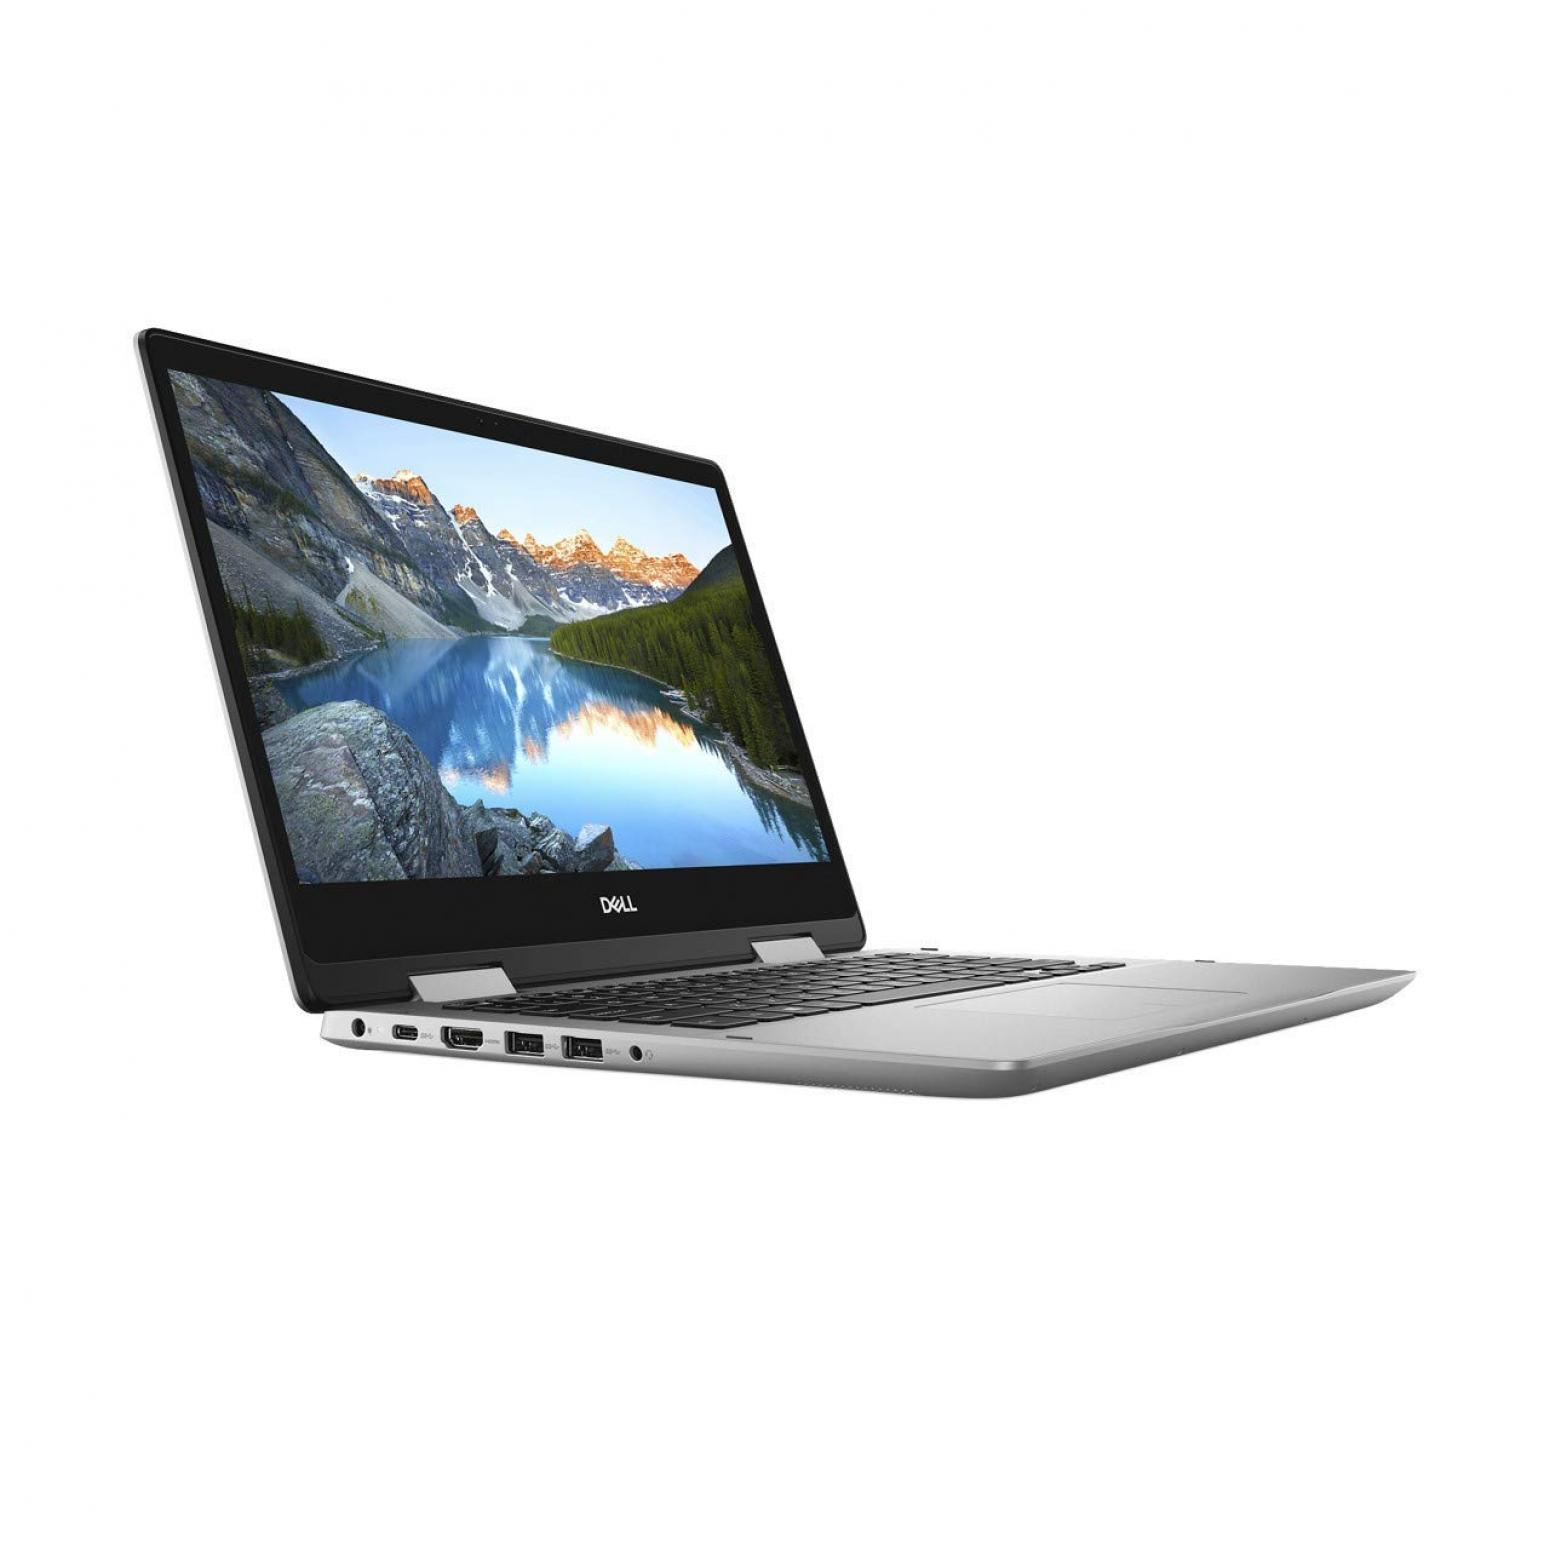 Ordinateur portable Dell Inspiron 14 5482 2-en-1 - SSD 256 Go, Core i3 Turbo Whiskey Lake - photo 5